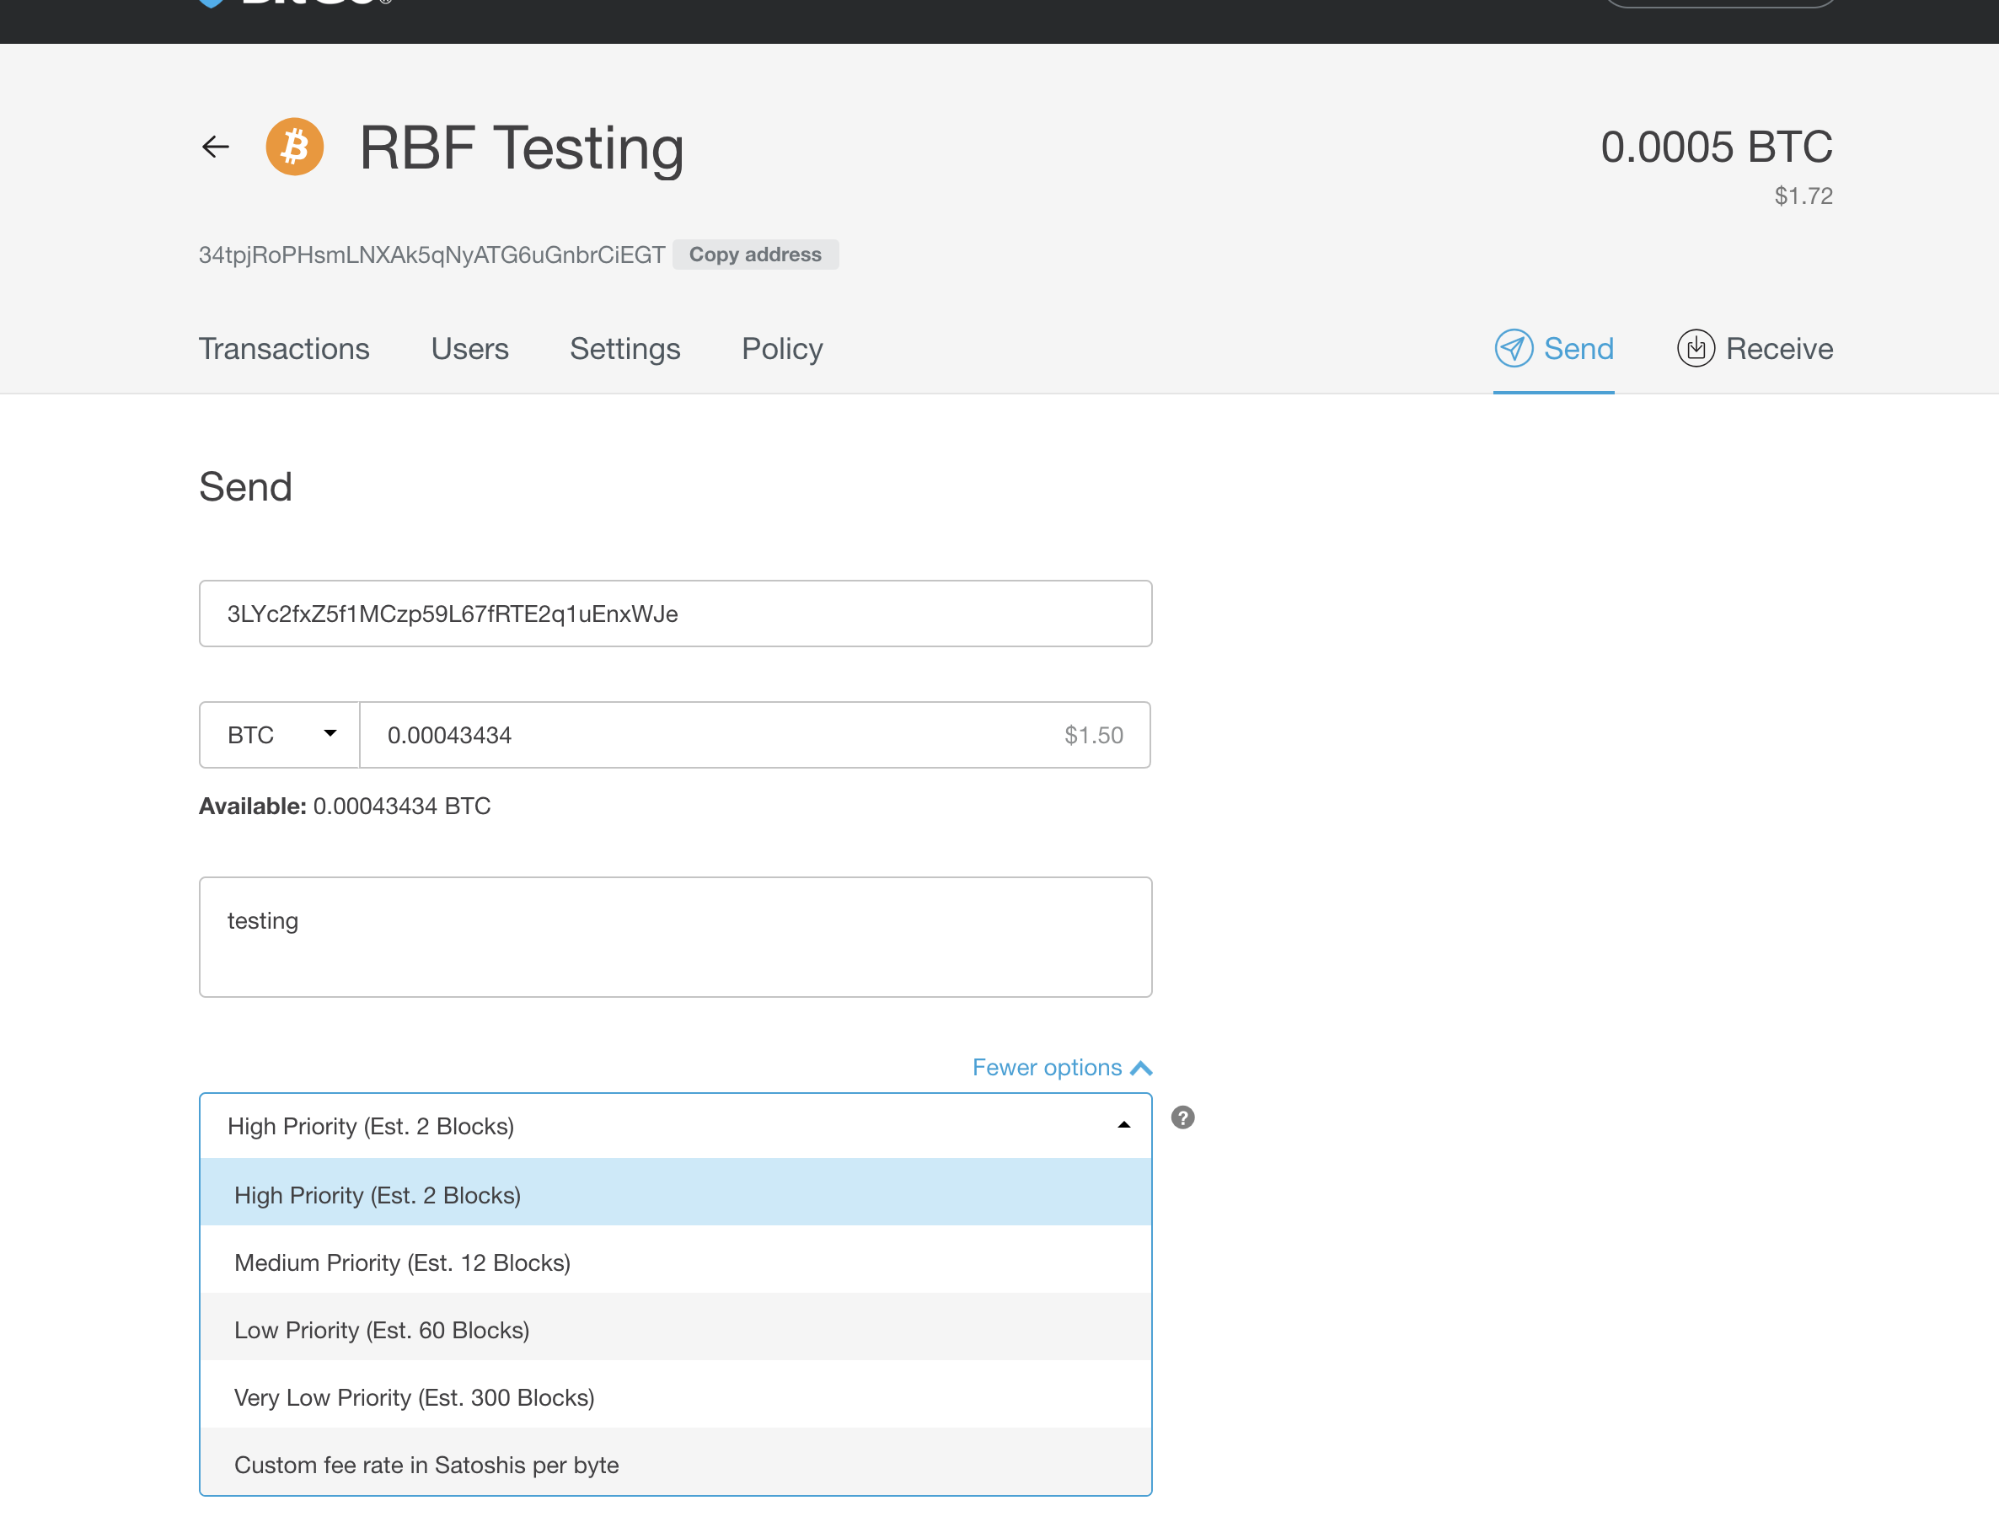 Sending RBF Transaction - Default send transaction screen with fee options expanded. No RBF options.